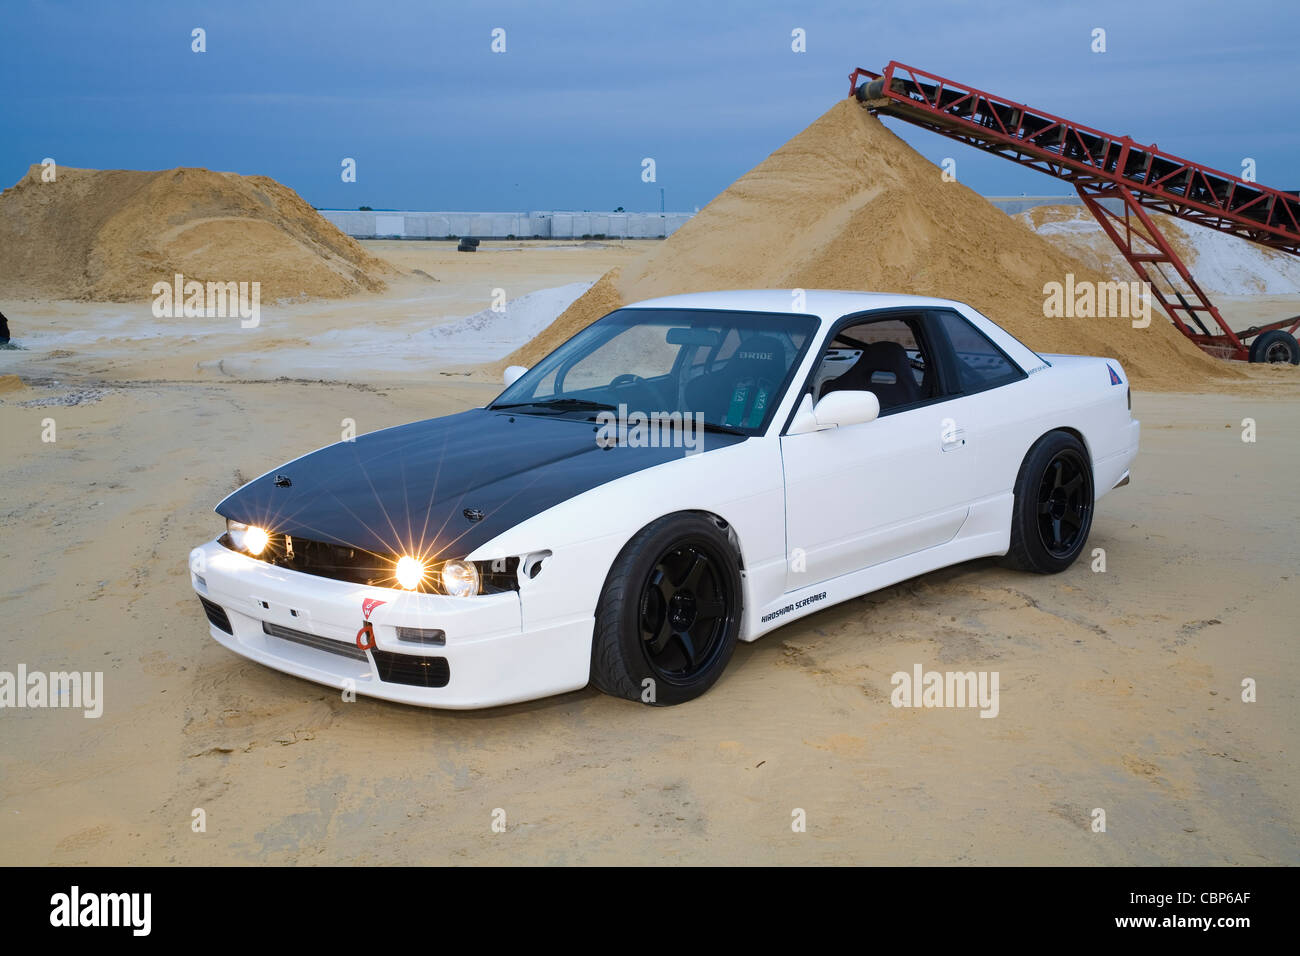 Exceptional Boy Racer Style Nissan 180SX Silvia S13 Modified And Custom Car   Stock  Image